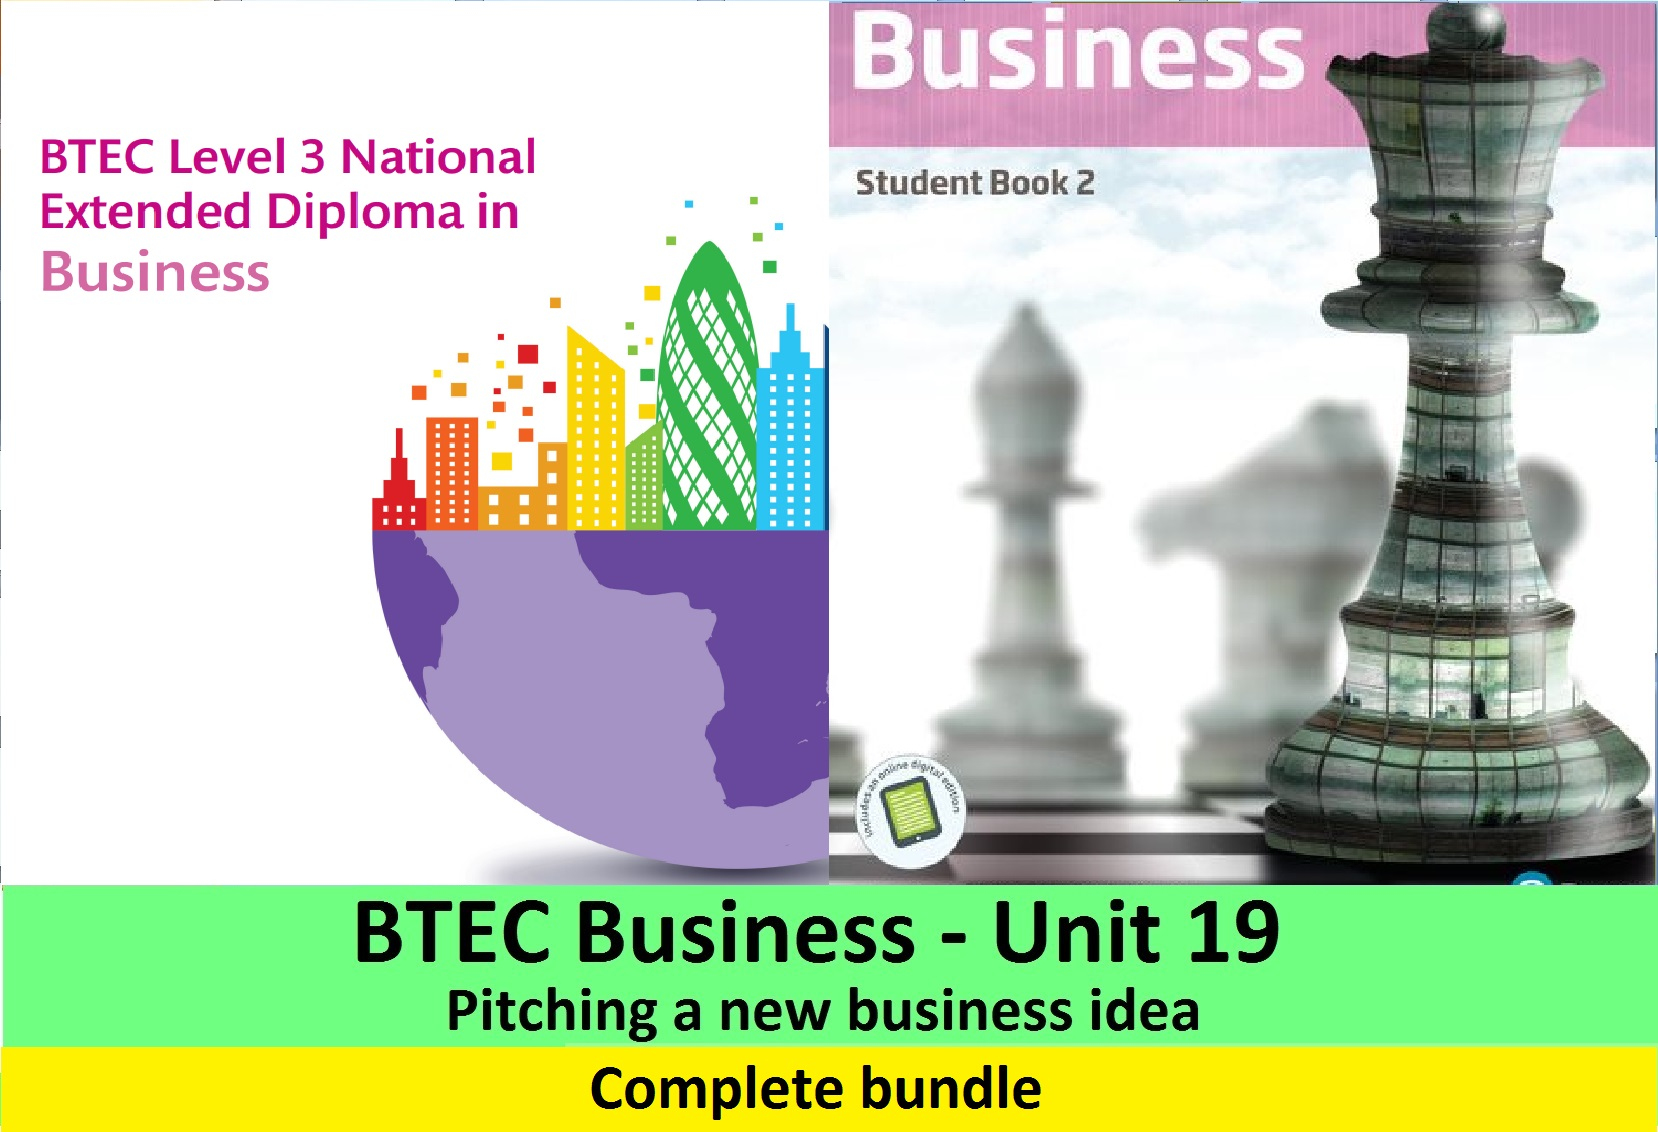 BTEC Business - Unit 19 Pitching a new business idea (Complete bundle)